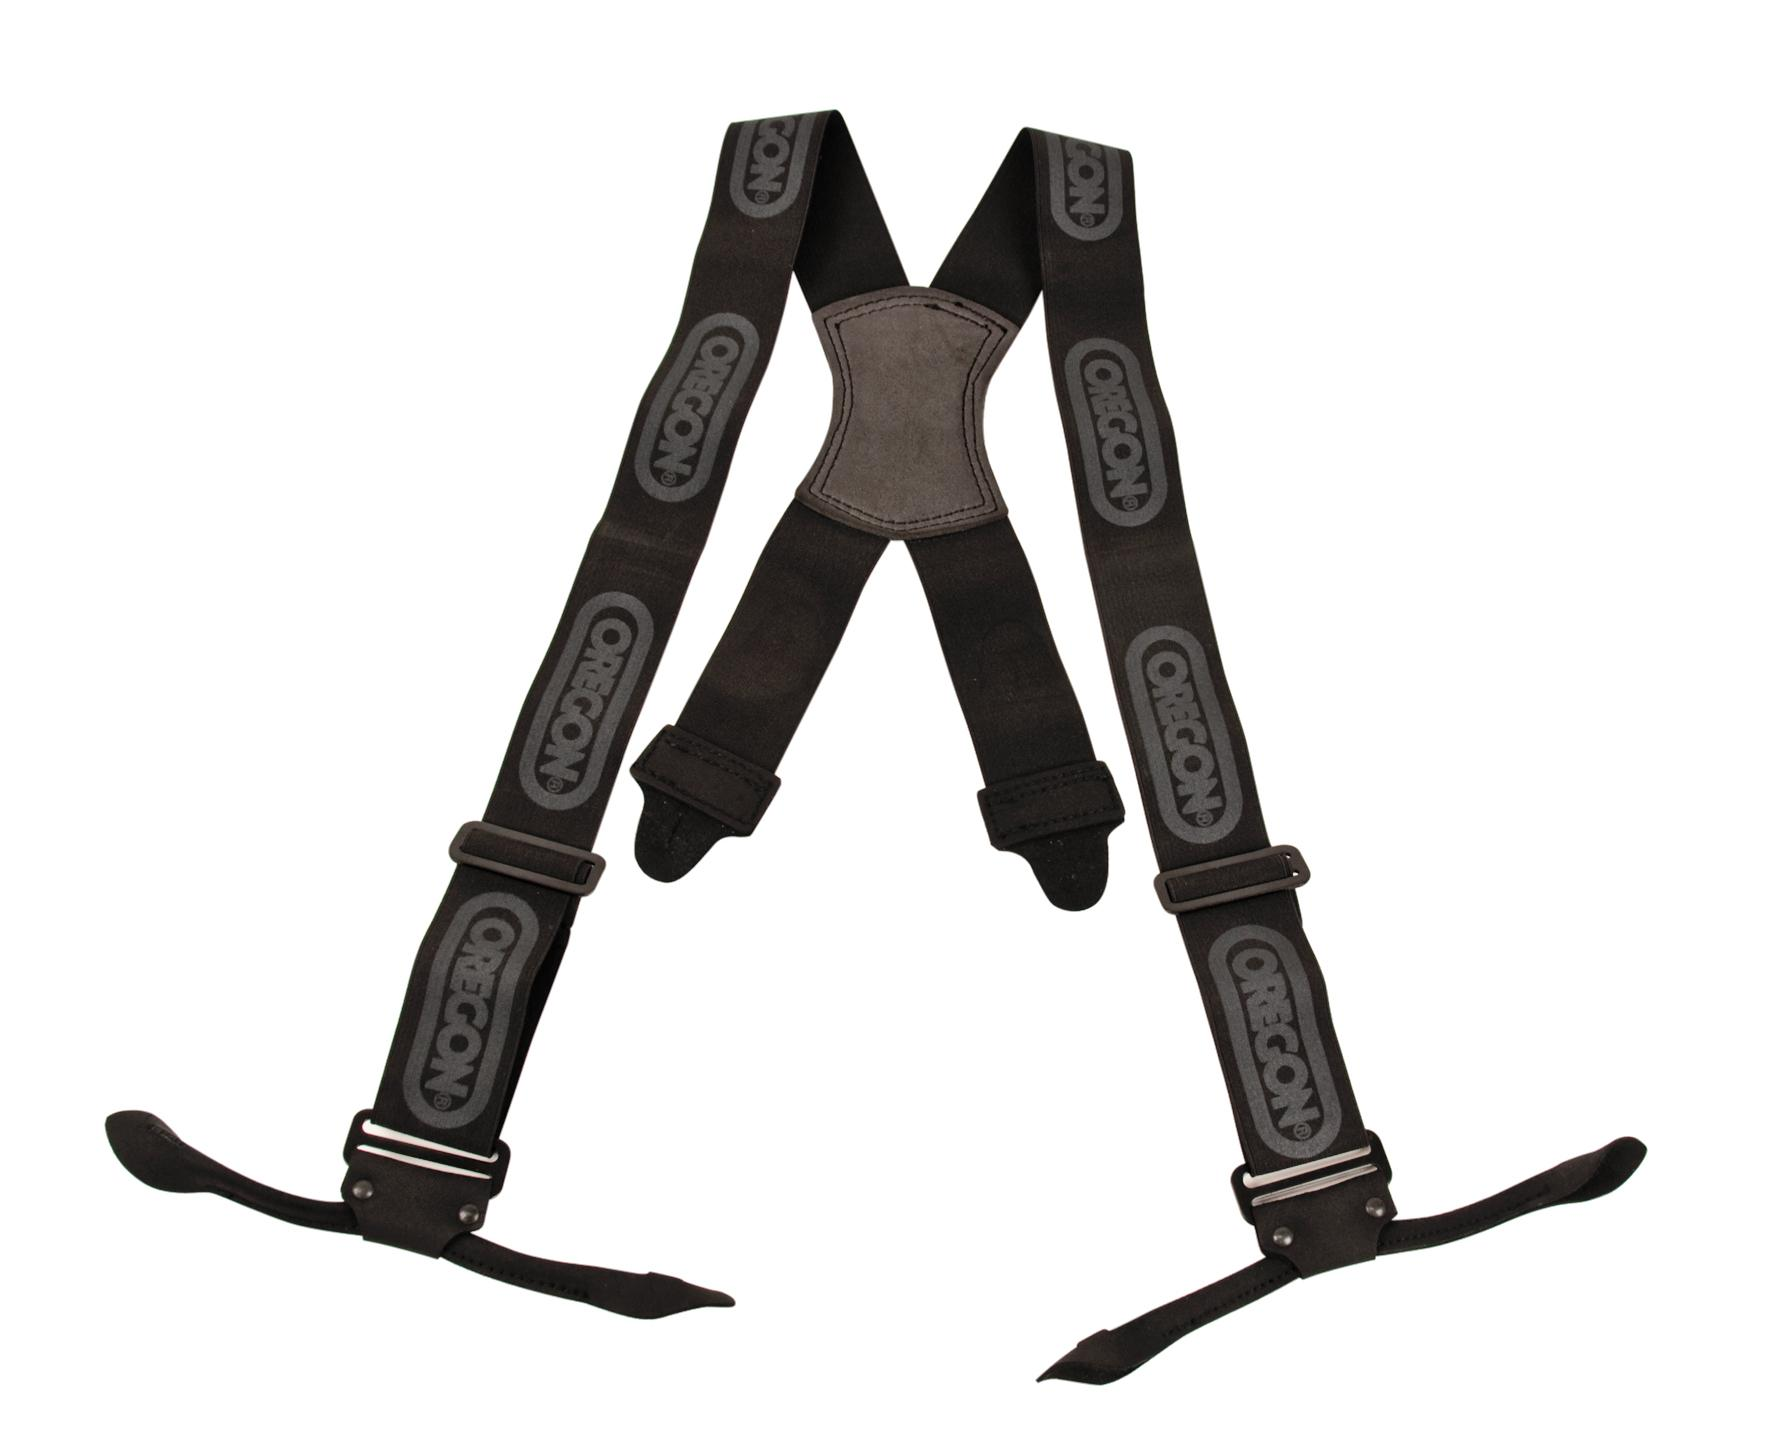 OREGON 562411 Black Logger Braces with Metal Clips